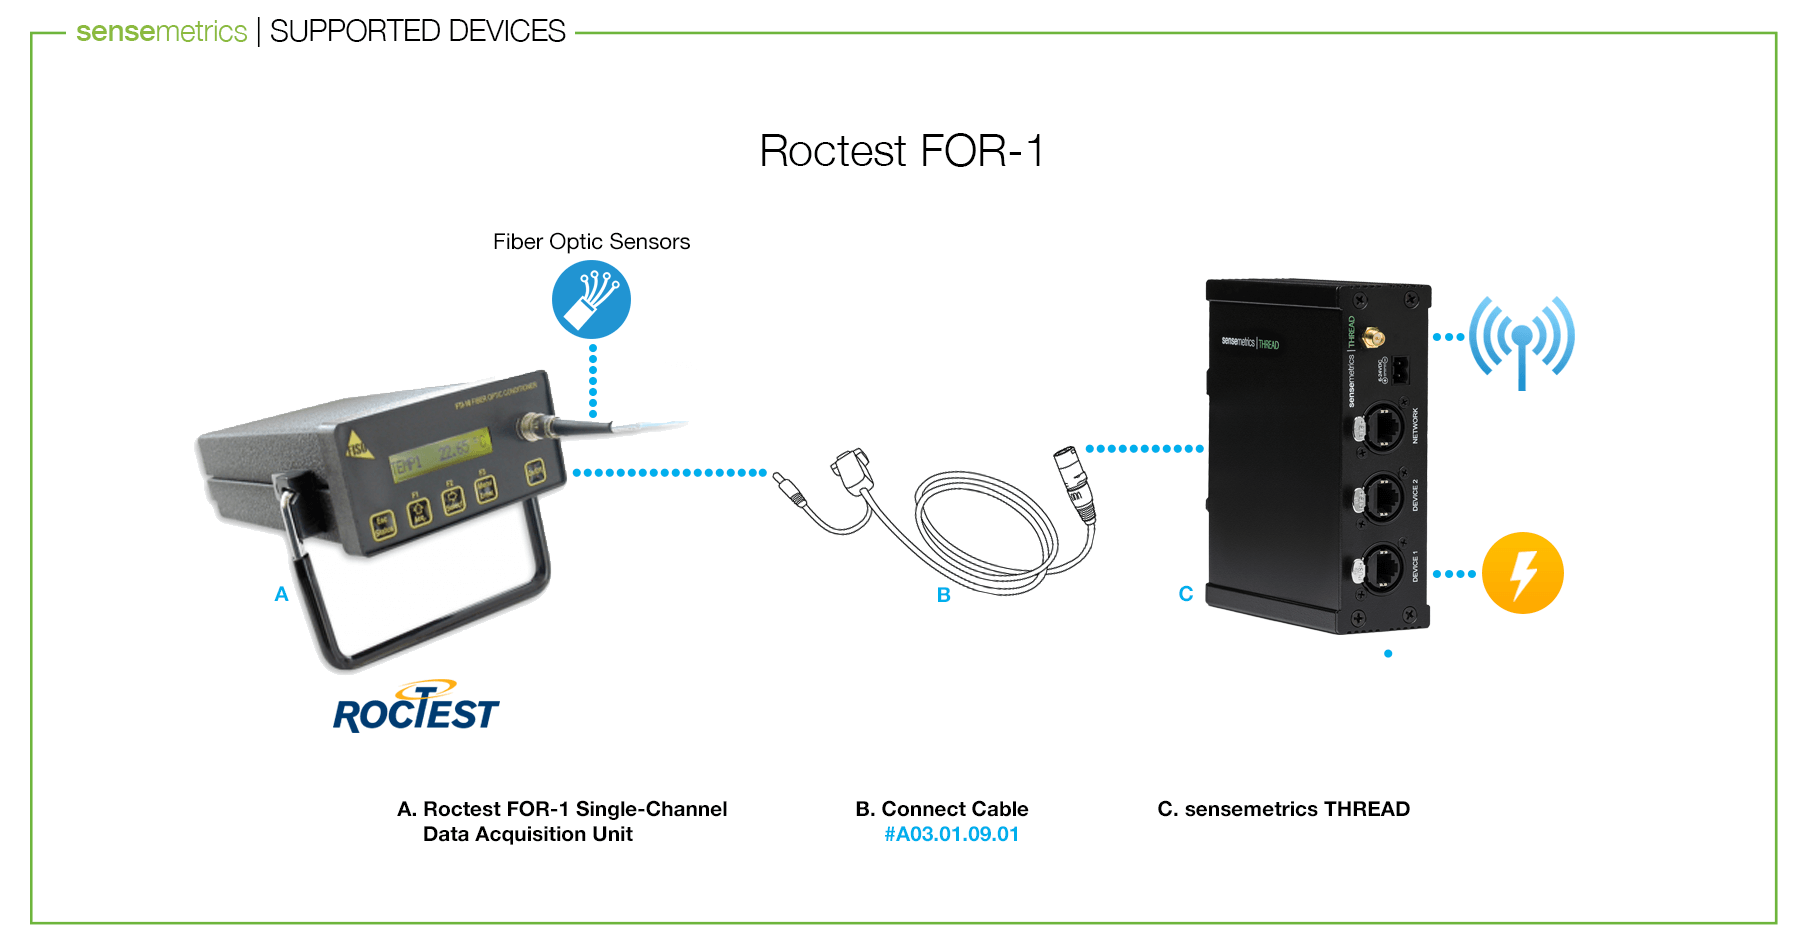 Announcing Integration with Roctest FOR-1